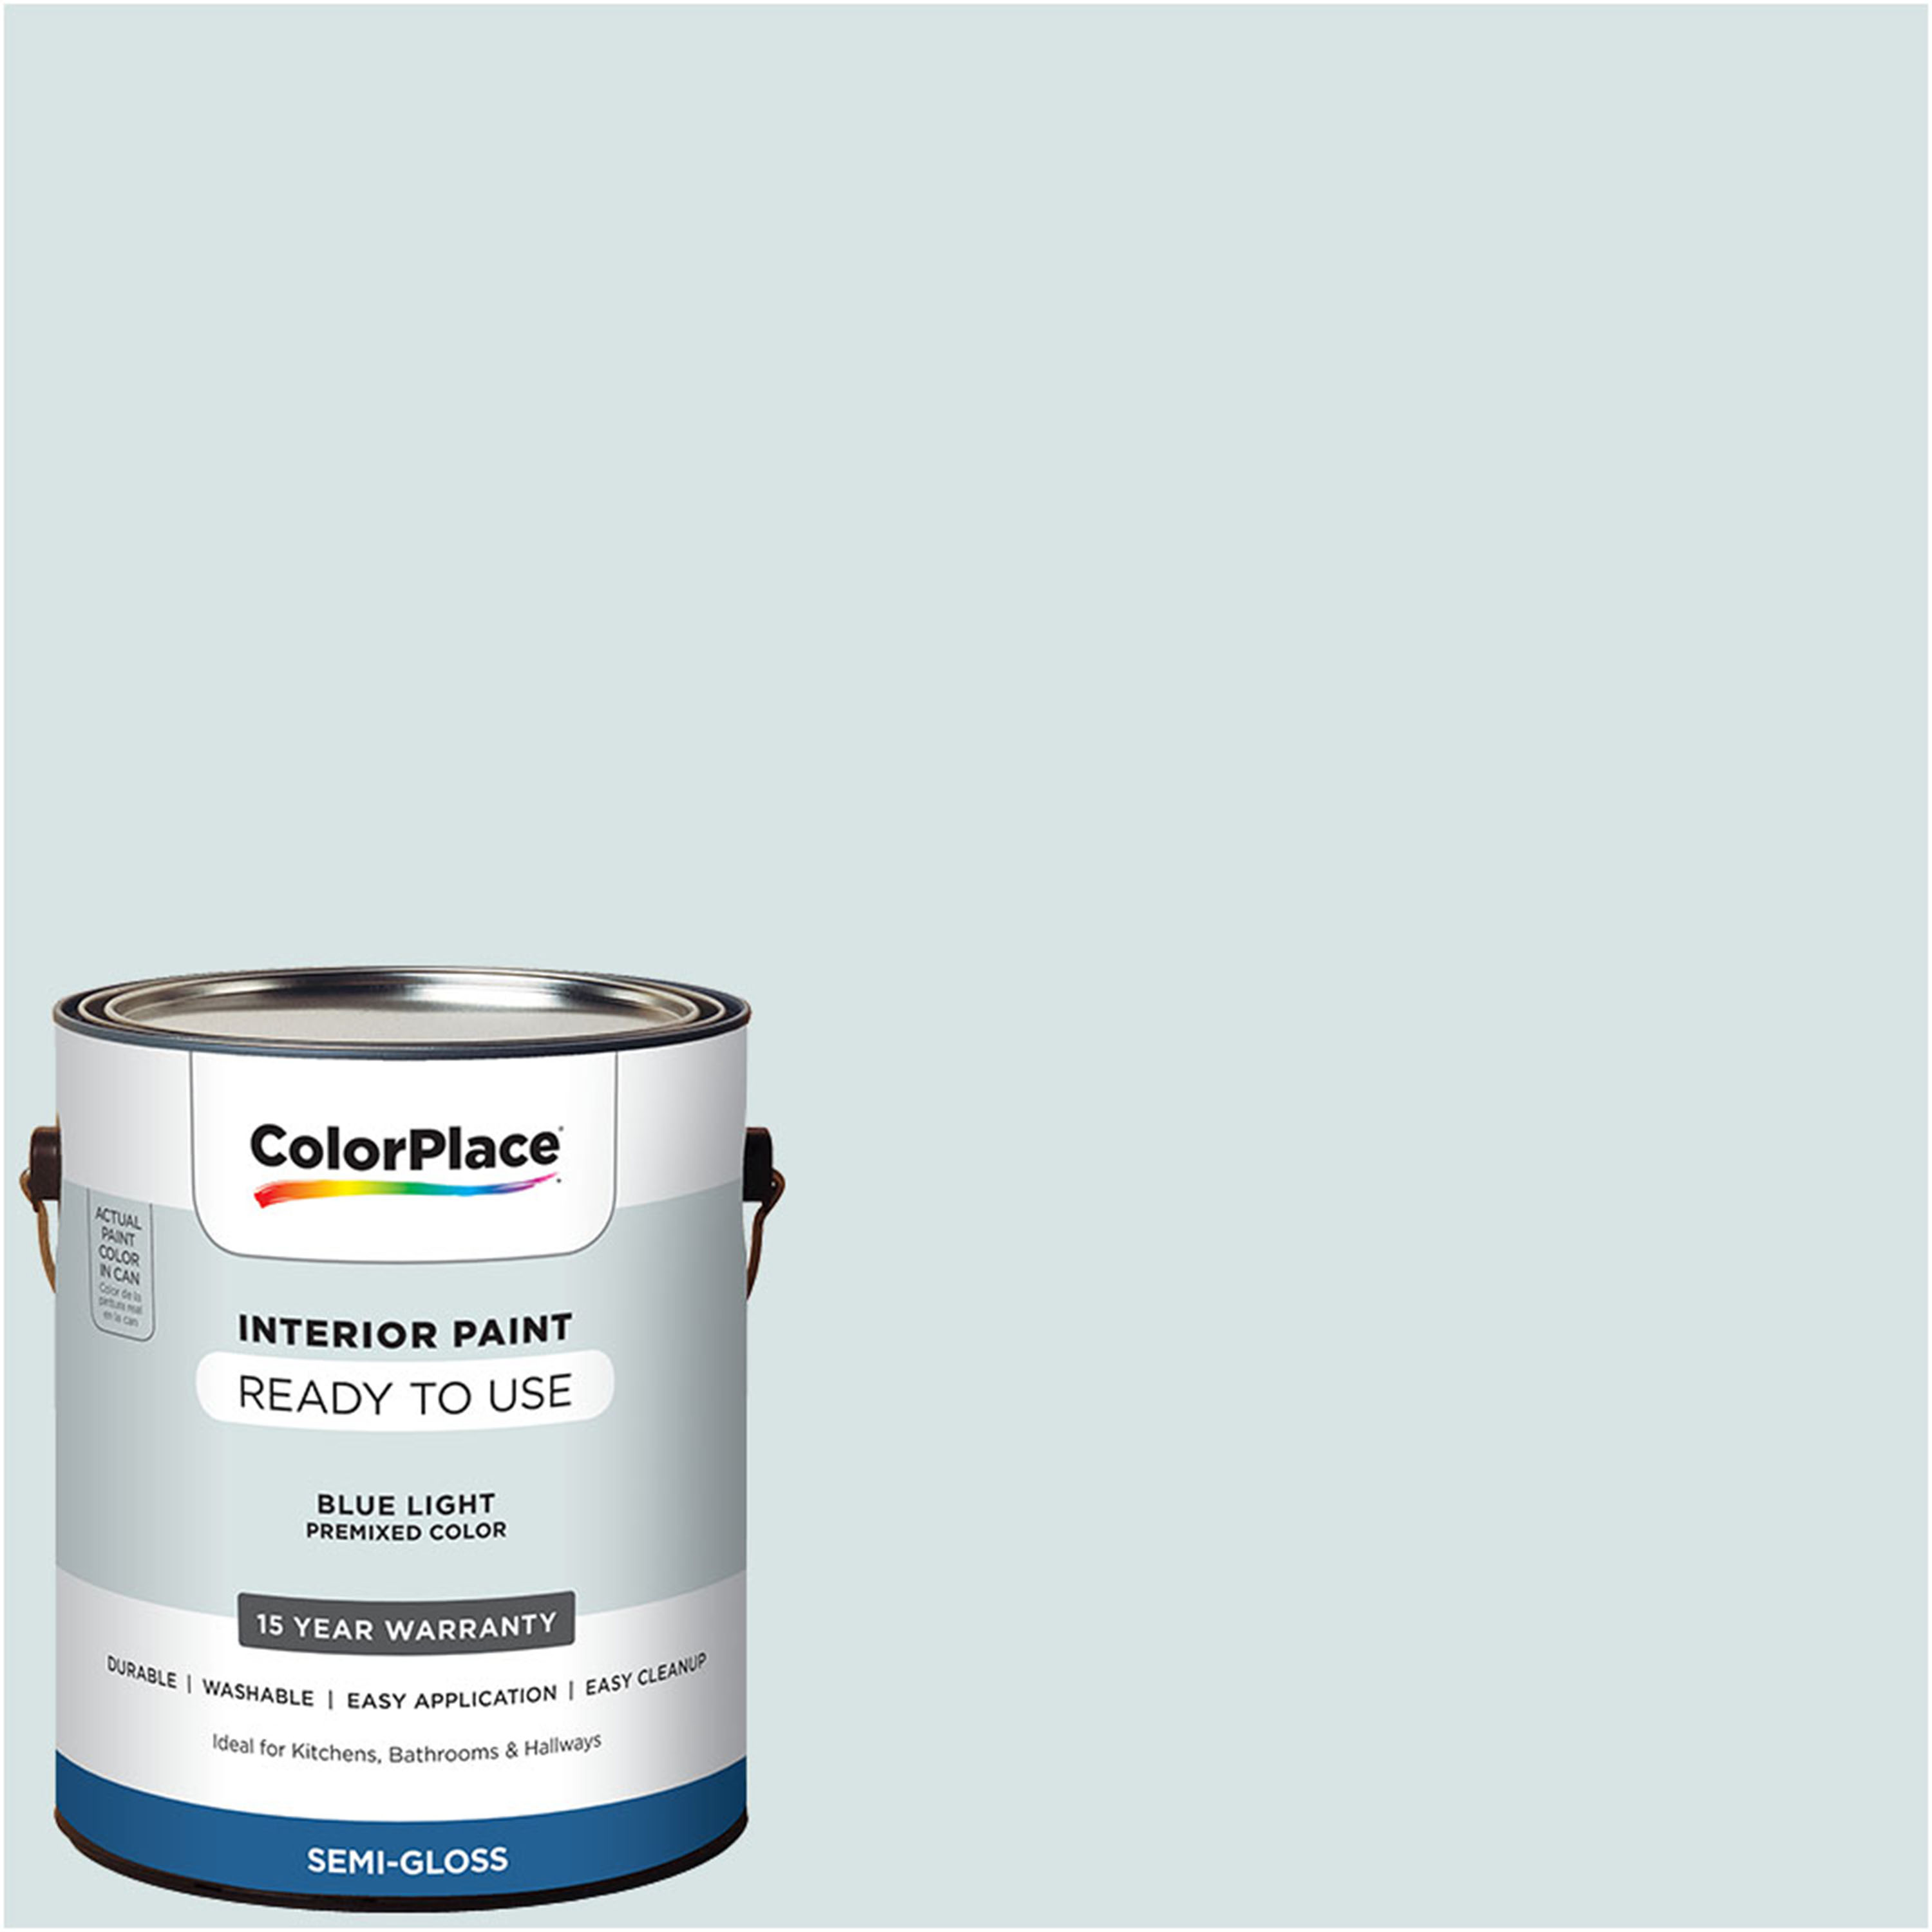 ColorPlace Pre Mixed Ready To Use, Interior Paint, Blue Light, Semi-Gloss Finish, 1 Gallon